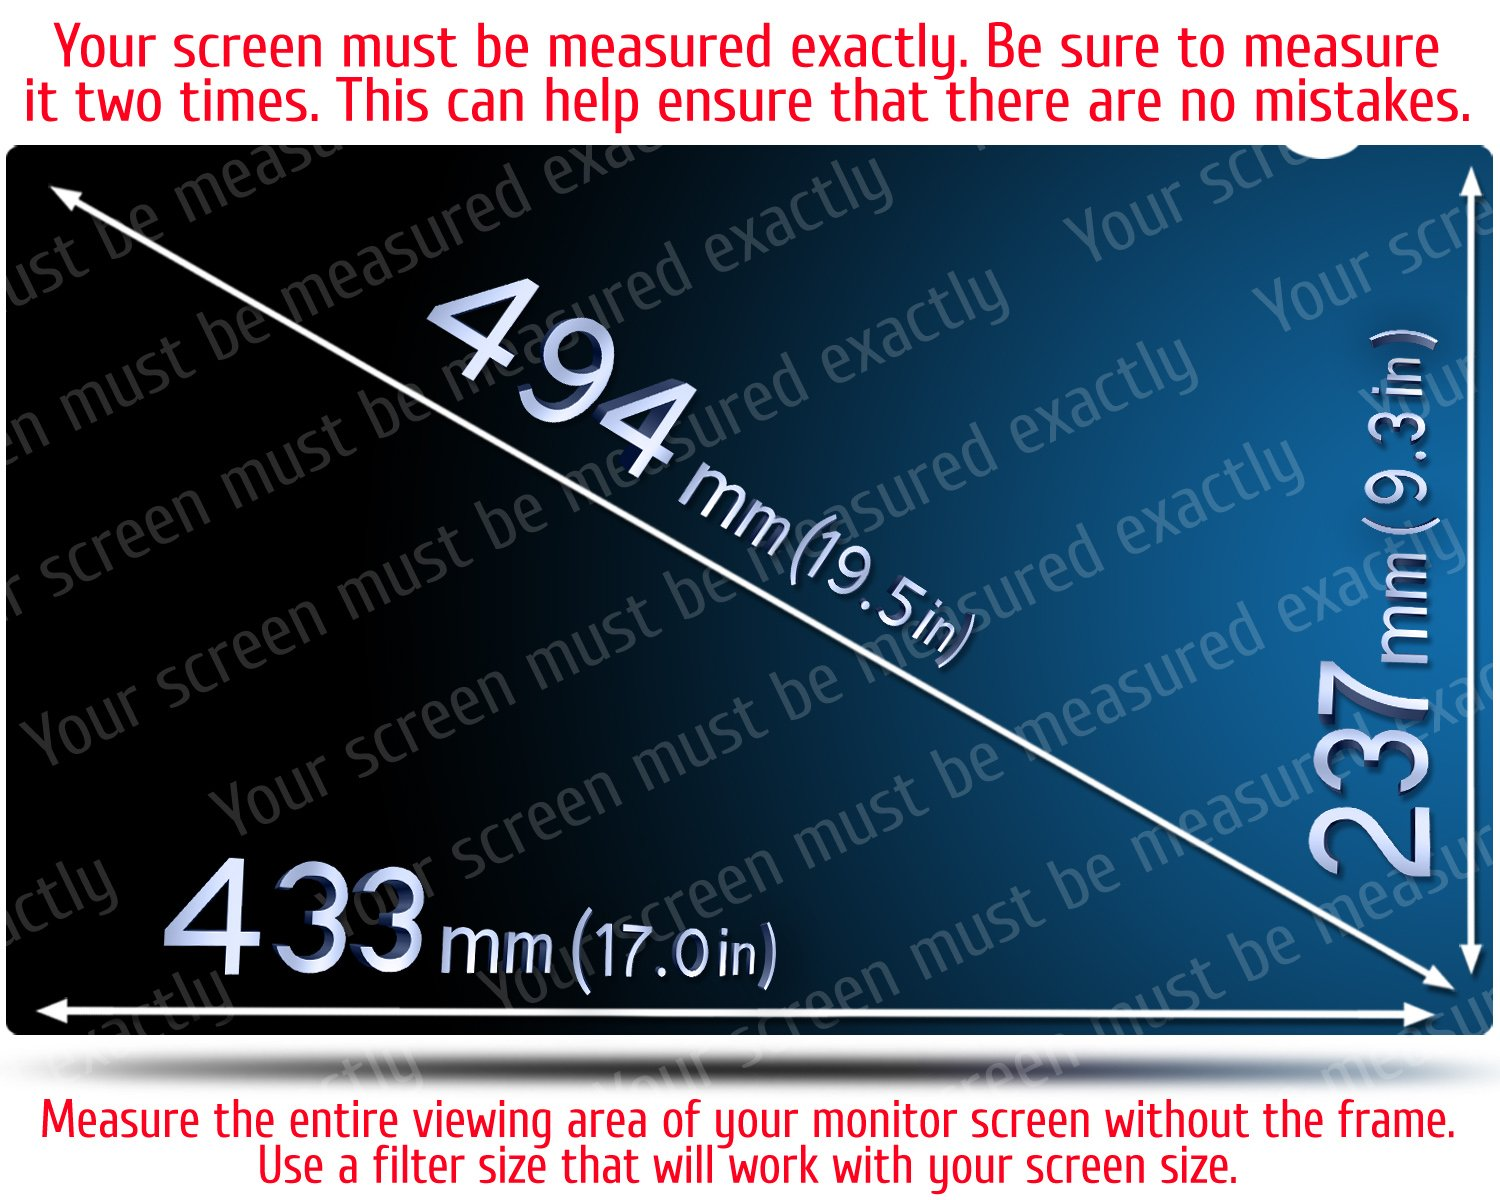 19.5 Inch Computer Privacy Screen Filter - 16:9 Aspect Ratio - for Widescreen Computer Monitor - Anti-Glare - Anti-Scratch Protector Film for Data confidentiality - Please Measure Carefully! by VINTEZ (Image #2)